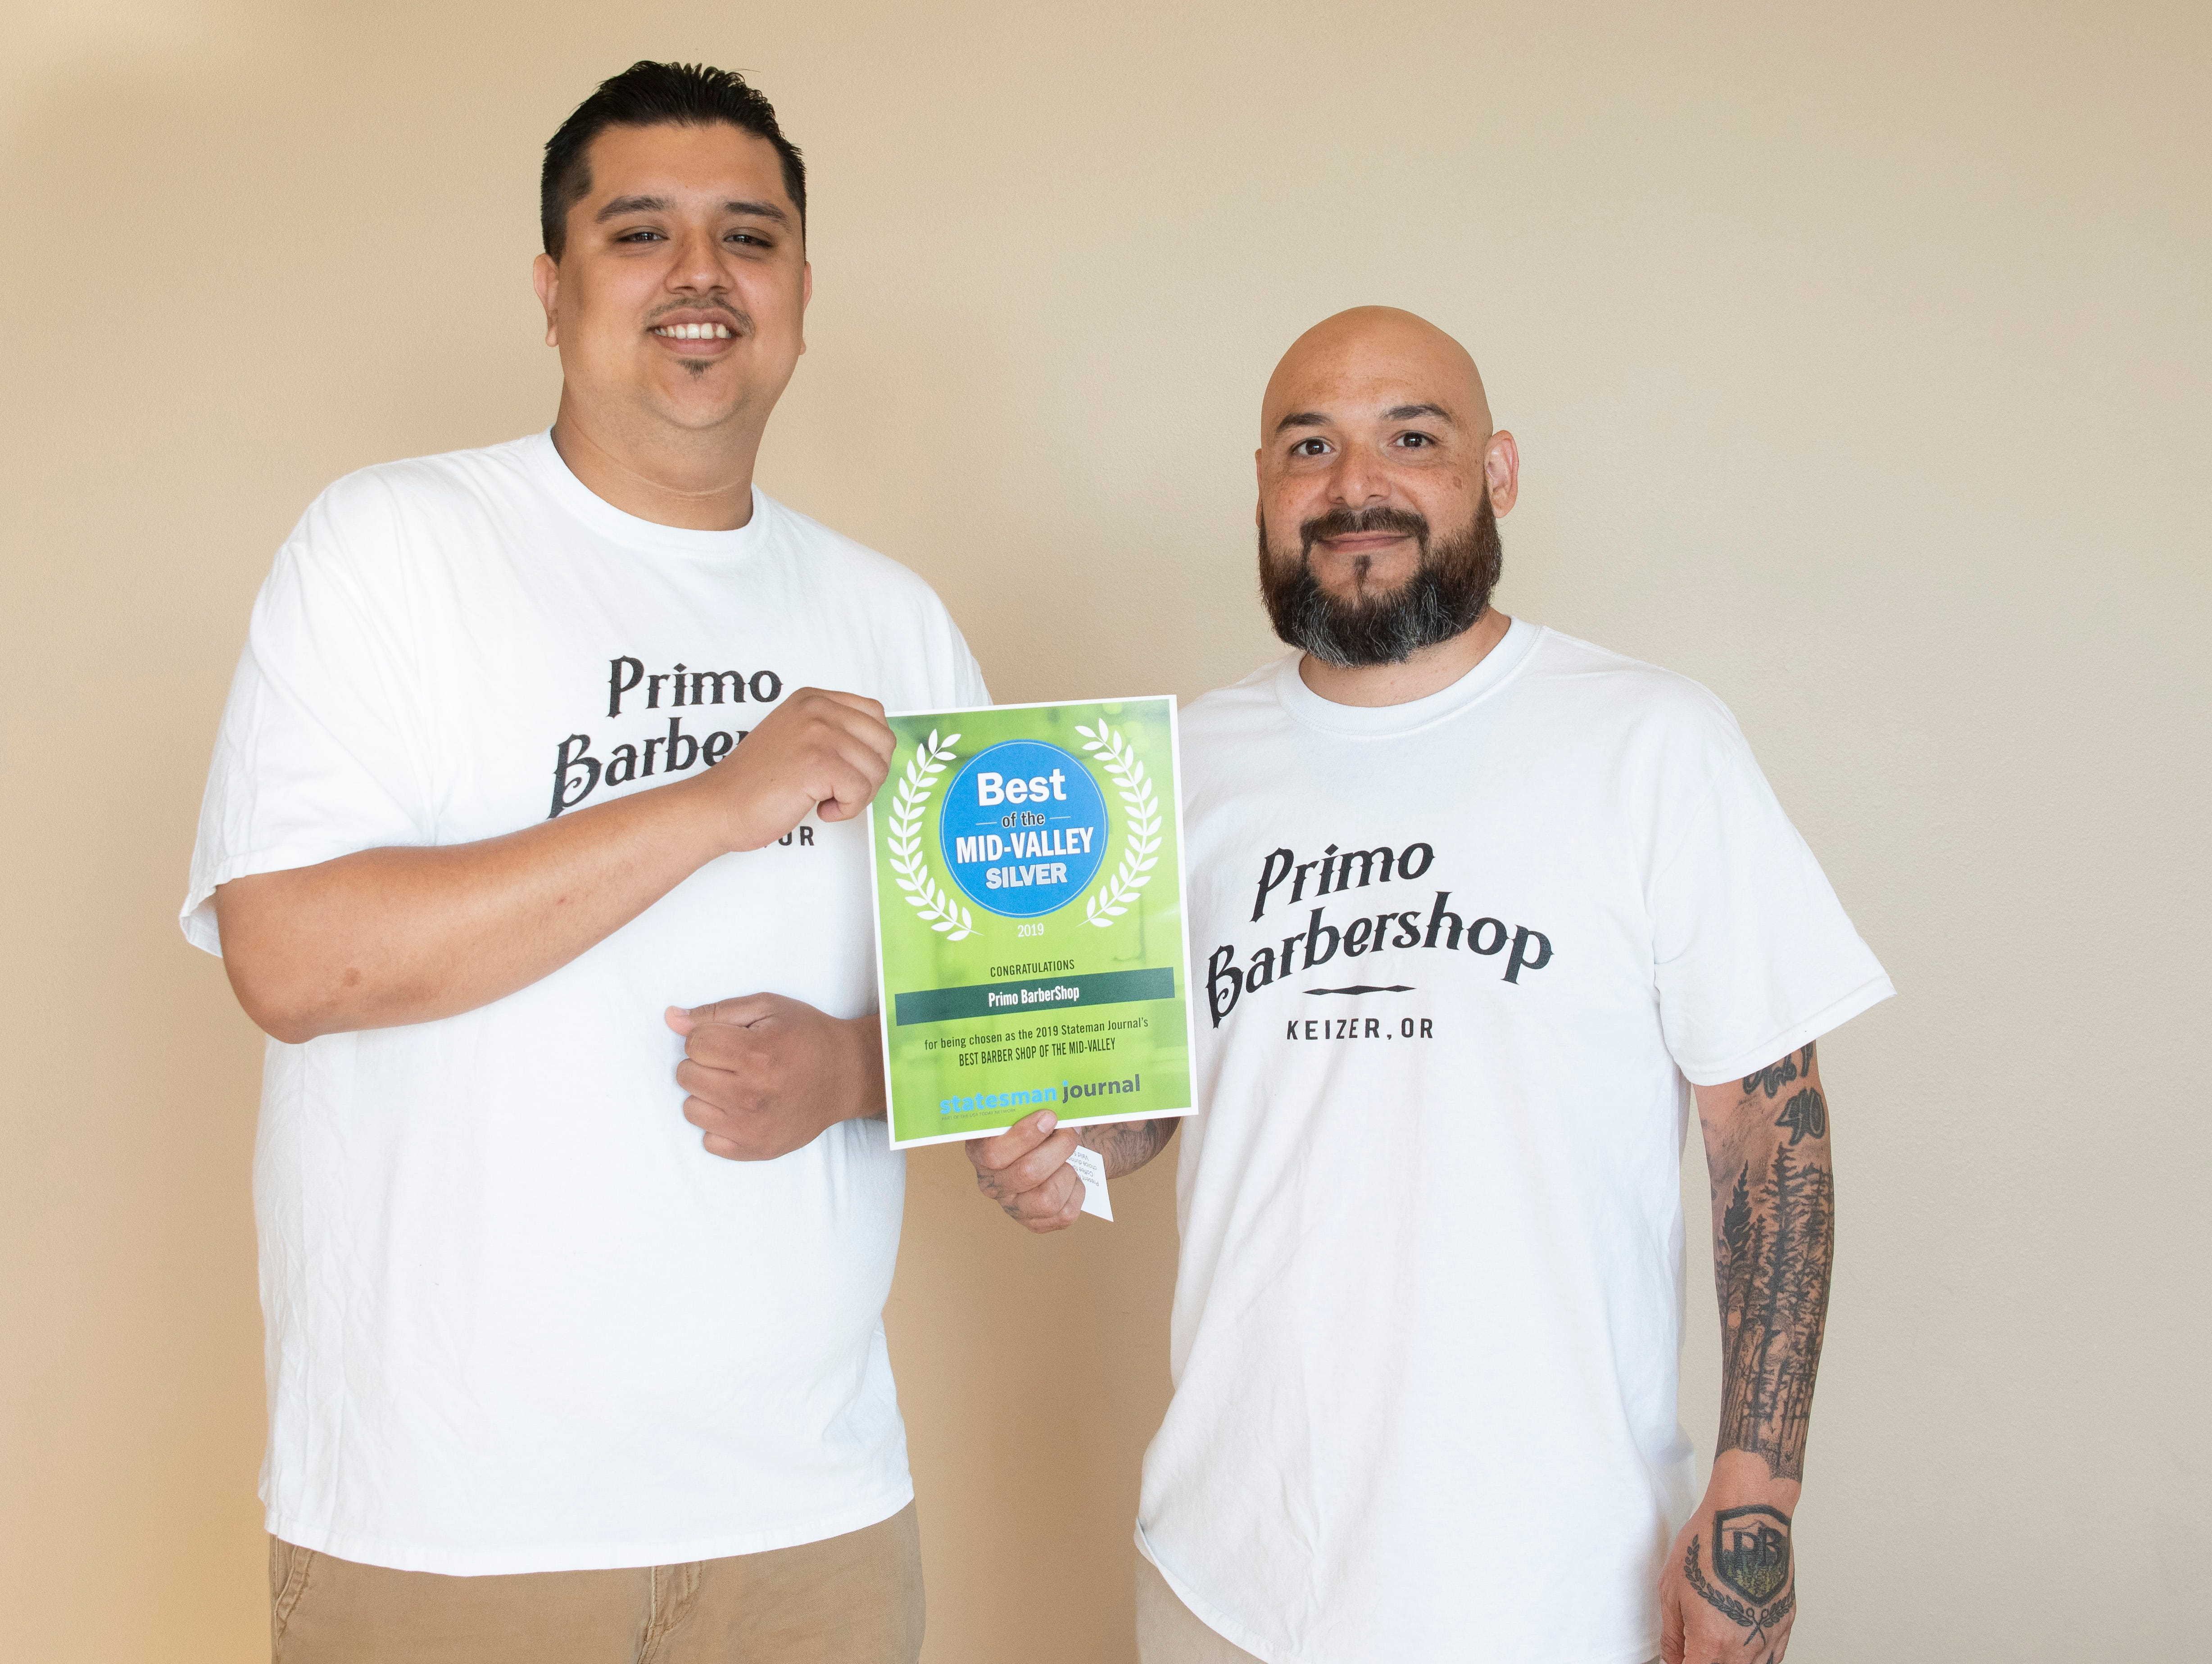 Primo Barbershop won silver for Best Barber Shop in the 2019 Best of the Mid-Valley.